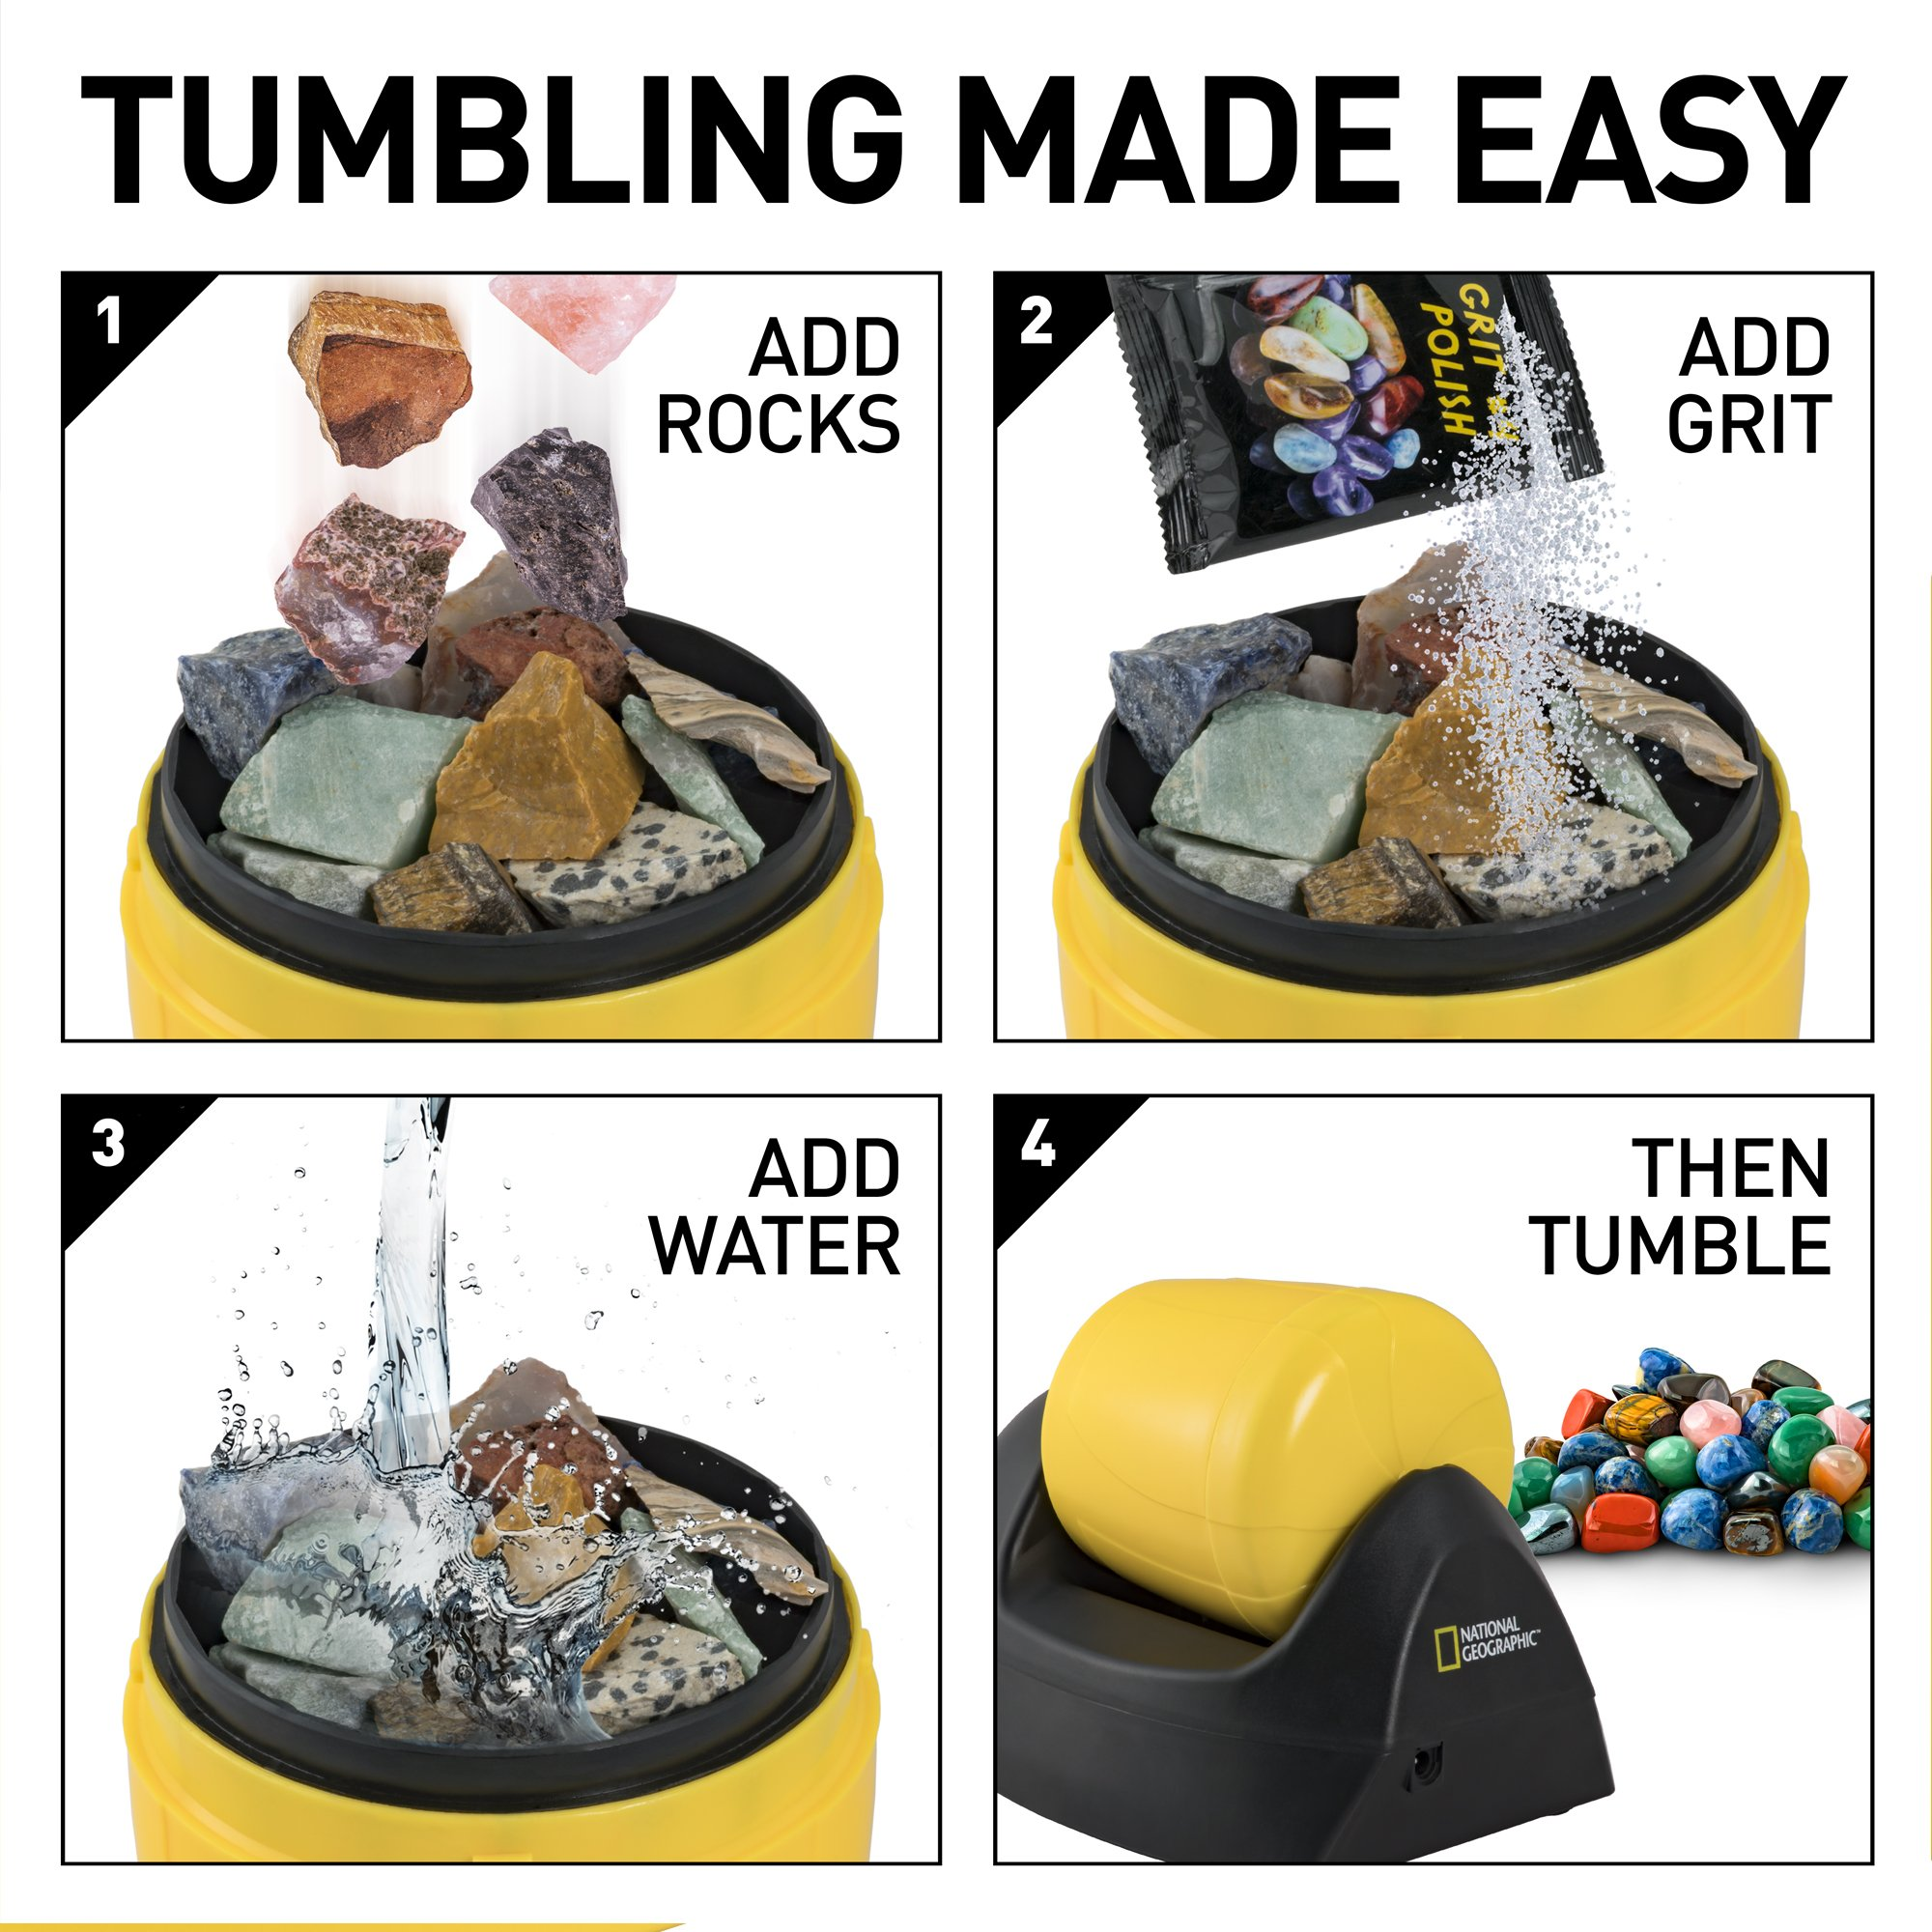 NATIONAL GEOGRAPHIC Starter Rock Tumbler Kit-Includes Rough Gemstones, 4 Polishing Grits, Jewelry Fastenings & Detailed Learning Guide - Great Stem Science Kit For Mineralogy & Geology Enthusiasts by NATIONAL GEOGRAPHIC (Image #3)